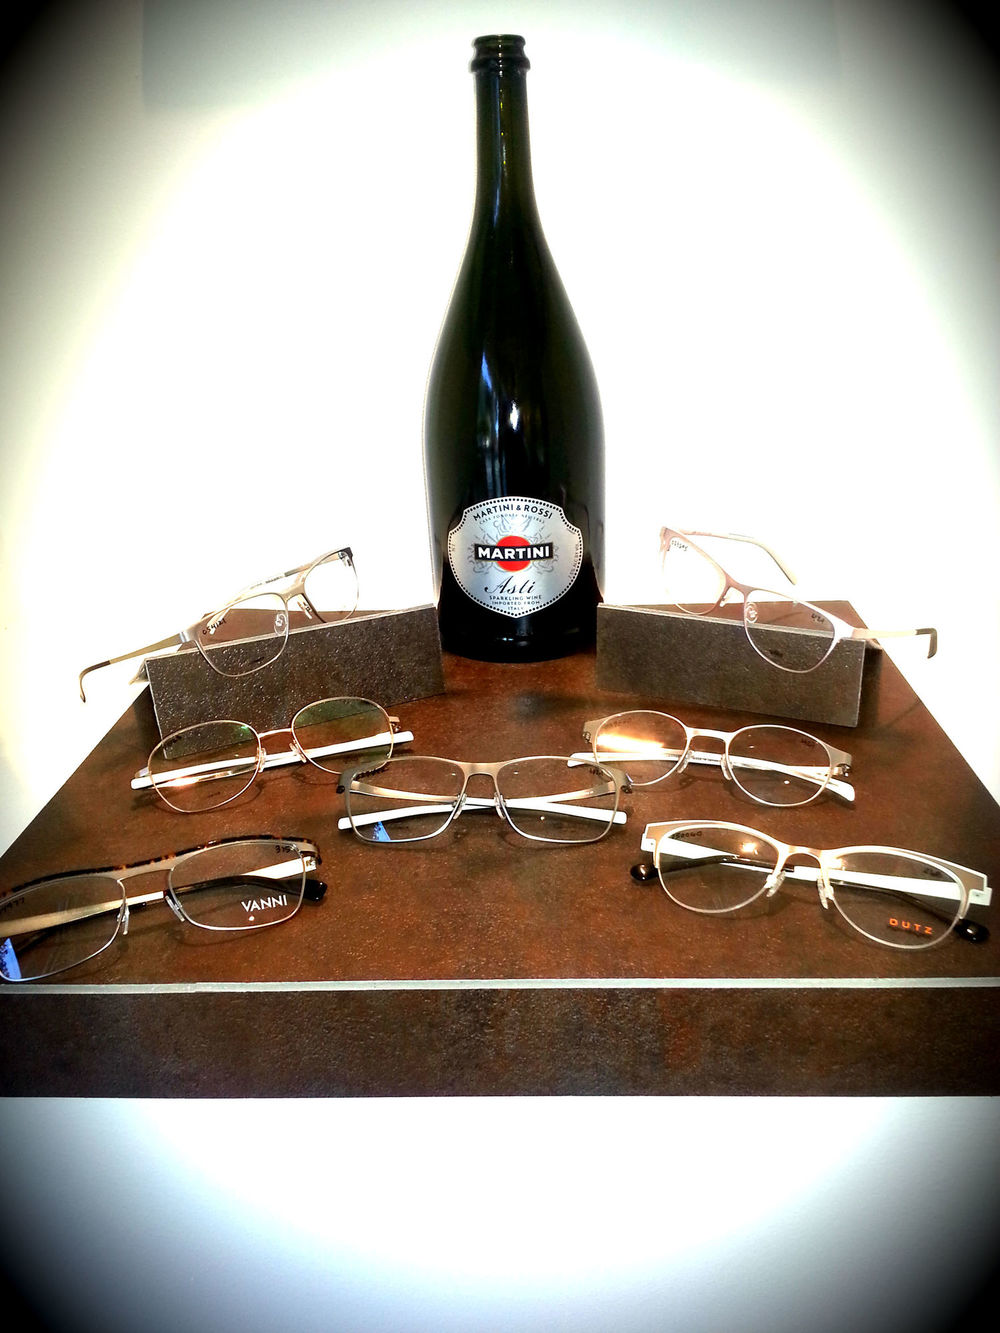 I wanted to showcase some of our shiny metal eyewear but was having a hard time figuring out how to make them pop. I found some old linoleum tiles and cut them up to create a display set. I also found a huge bottle of Asti in our recycle bin left from last nights Art Walk party that we hosted. The silver label on the Asti perfectly complimented the silver and gold tones found on the eyewear. Garbage never made my eyewear look so classy!